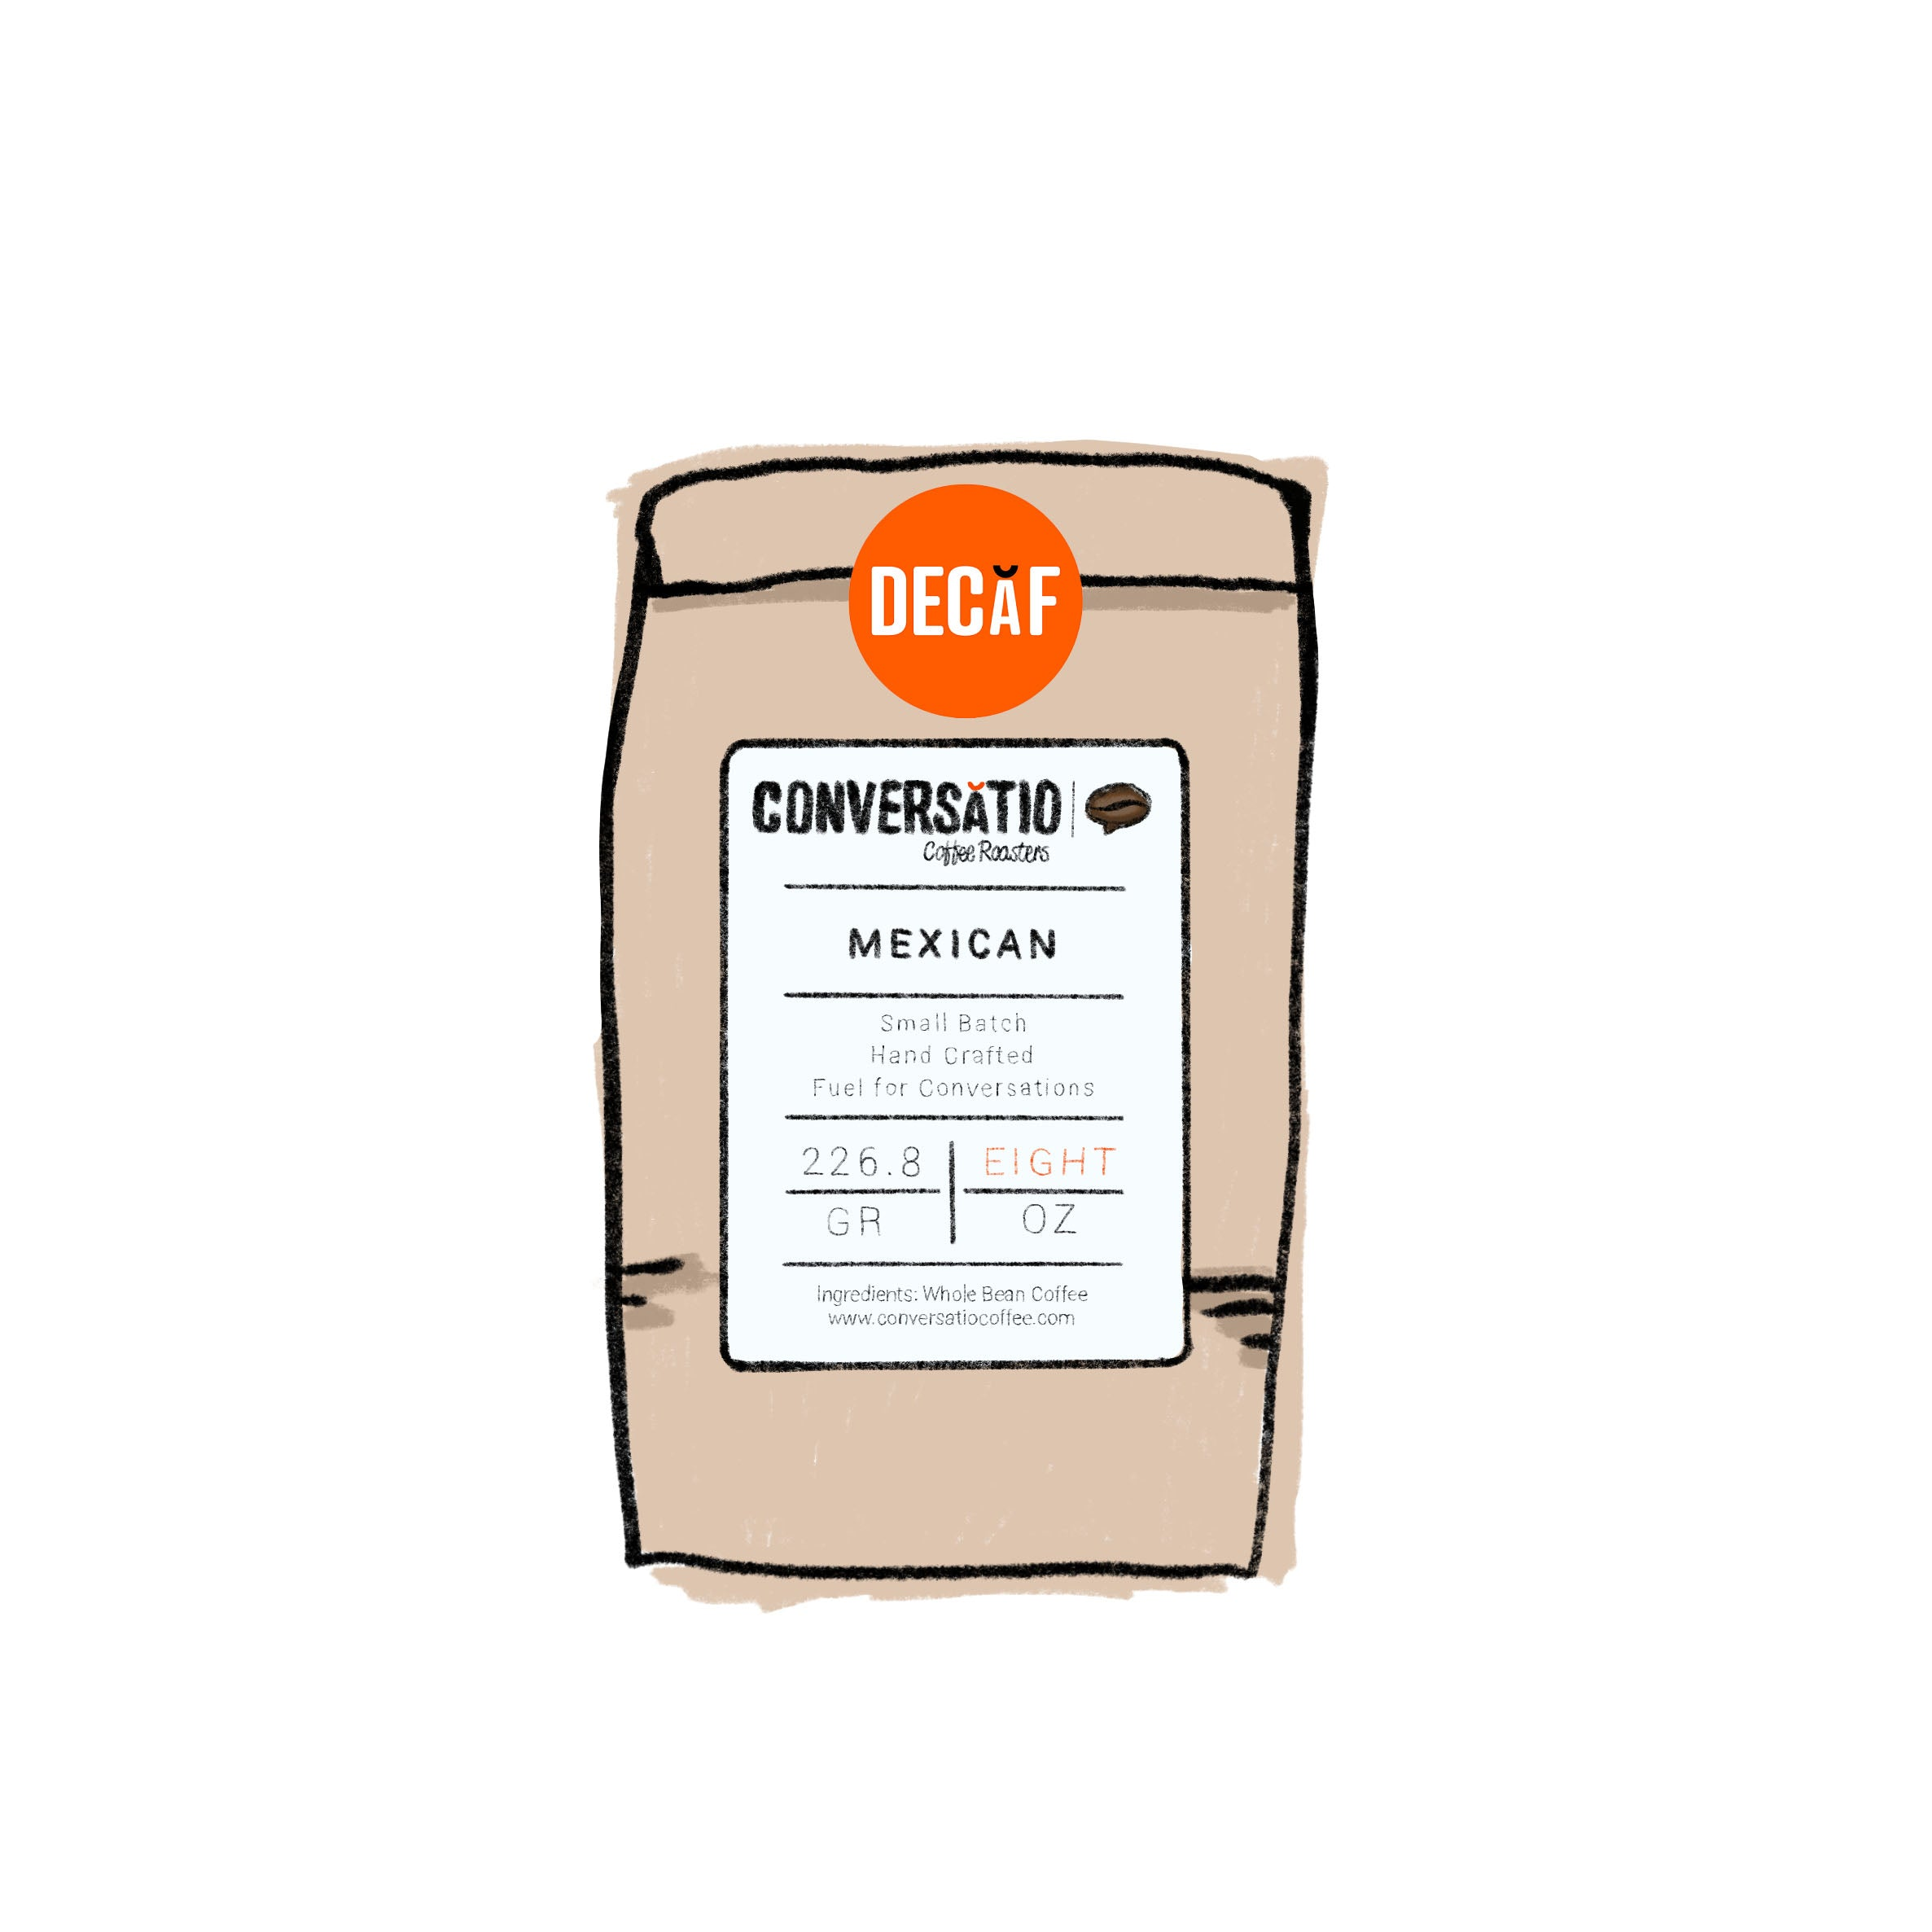 DECAF Mexican - NEW!